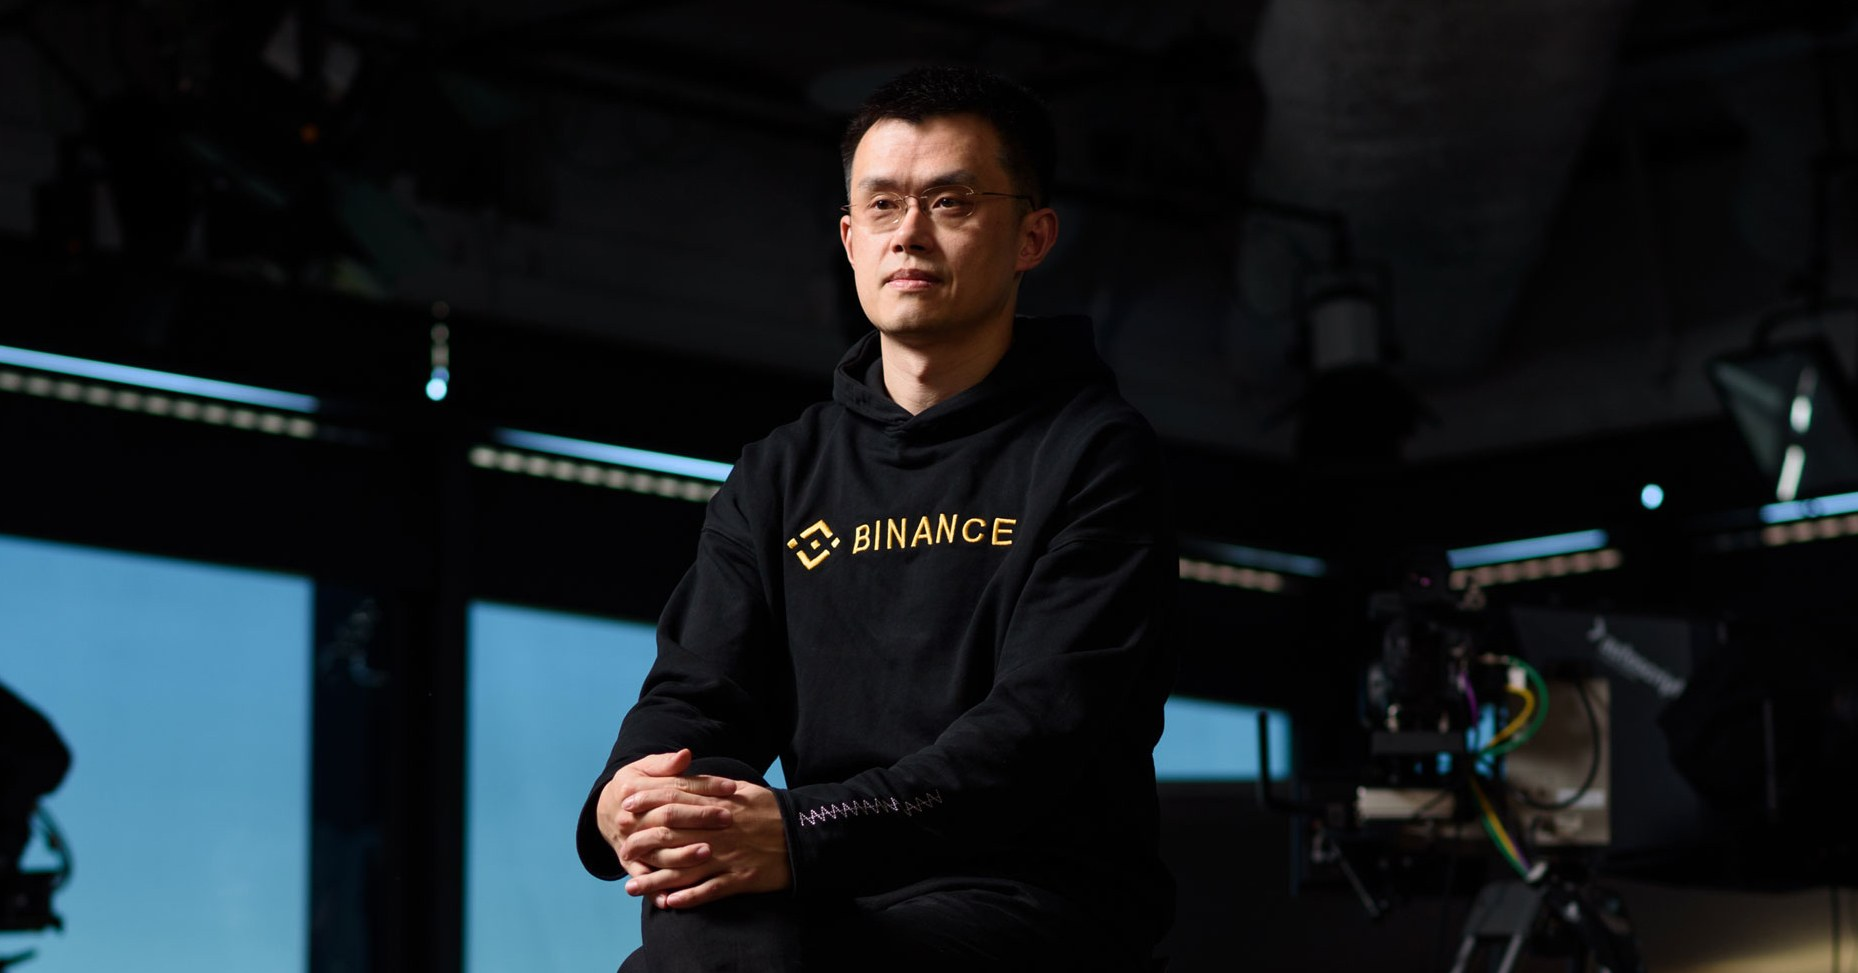 Hack Brief: Hackers Stole $40 Million from Binance Cryptocurrency Exchange